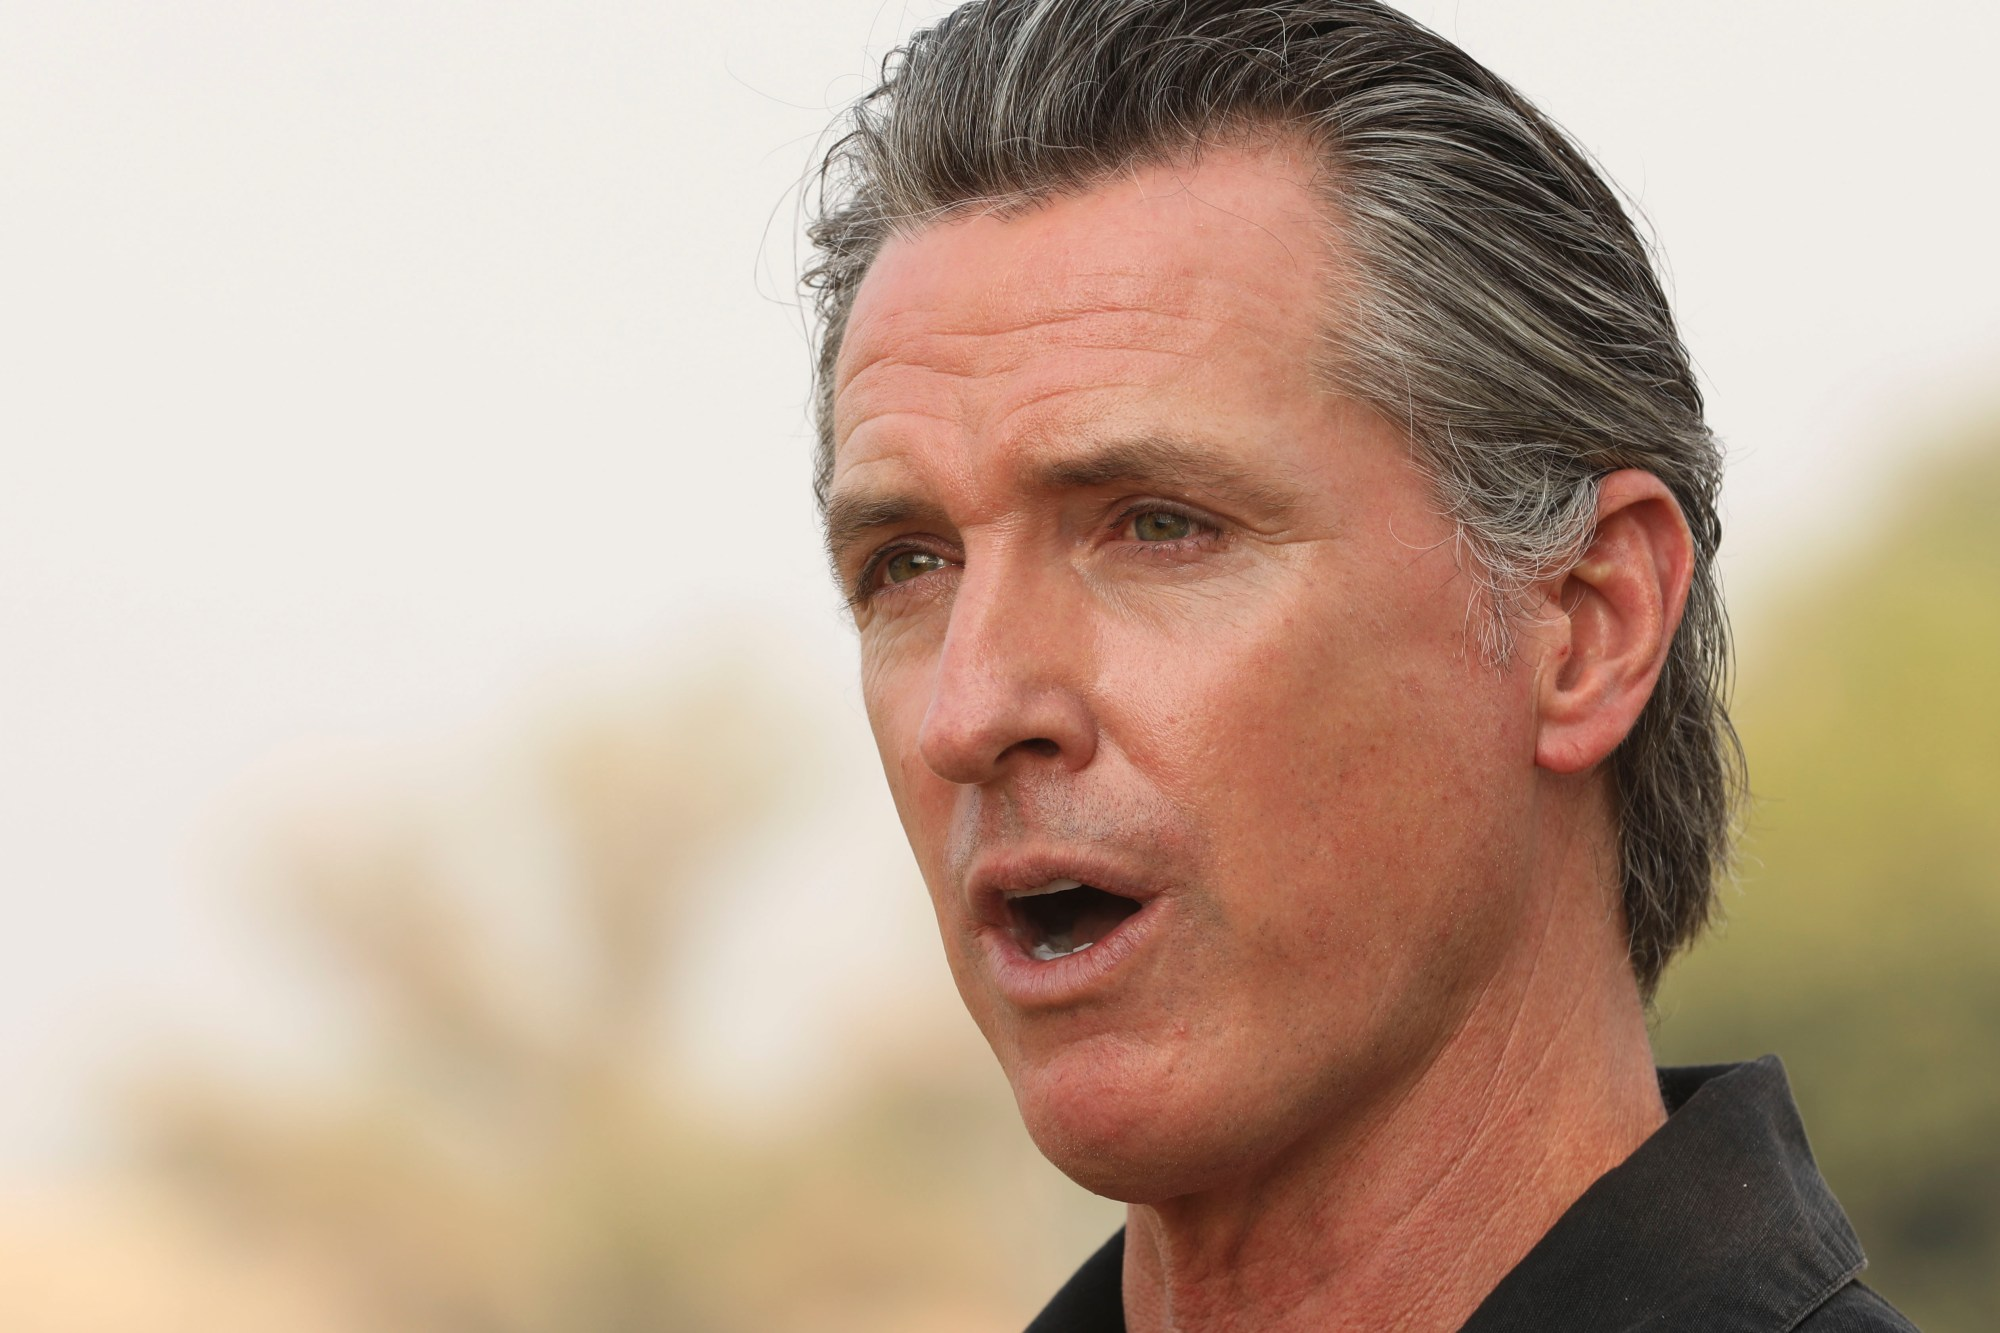 In this Sept. 14, 2020, file photo, California Gov. Gavin Newsom visits the Camelot Equestrian Park in Oroville, Calif. (Carin Dorghalli/Bay Area News Group via AP, File)